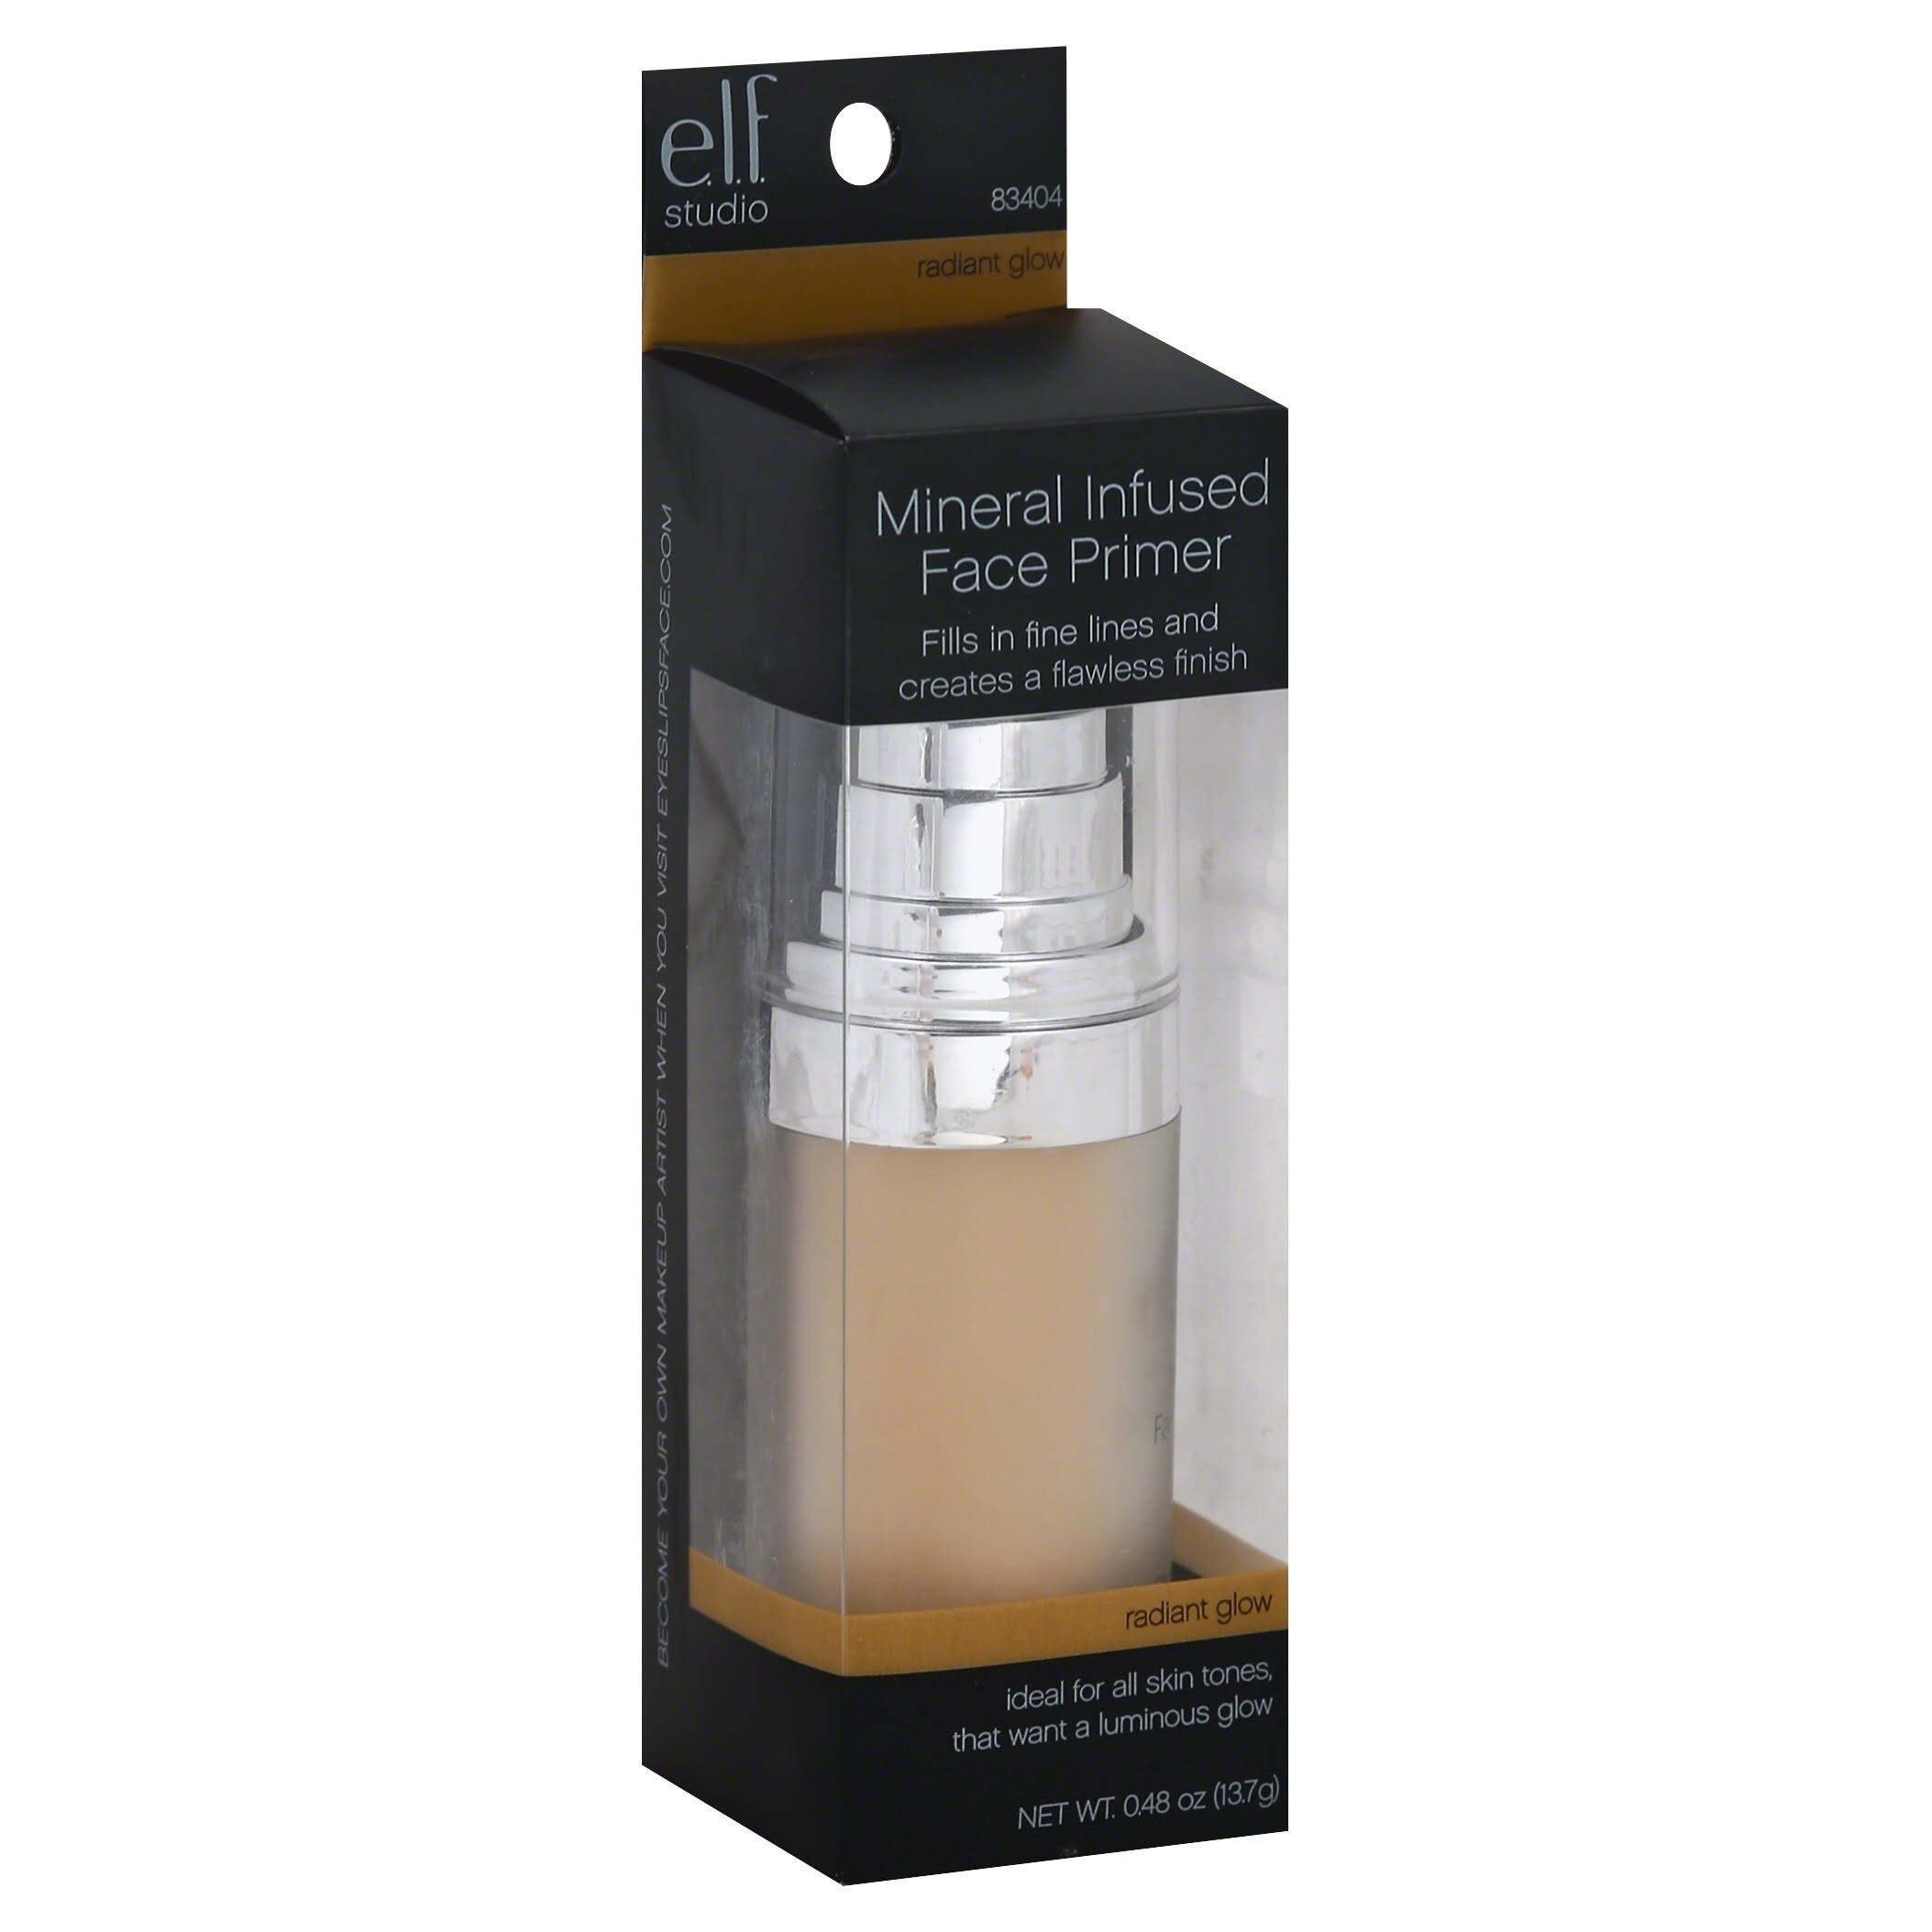 e.l.f. Studio Illuminating Face Primer - Radiant Glow, 0.49oz